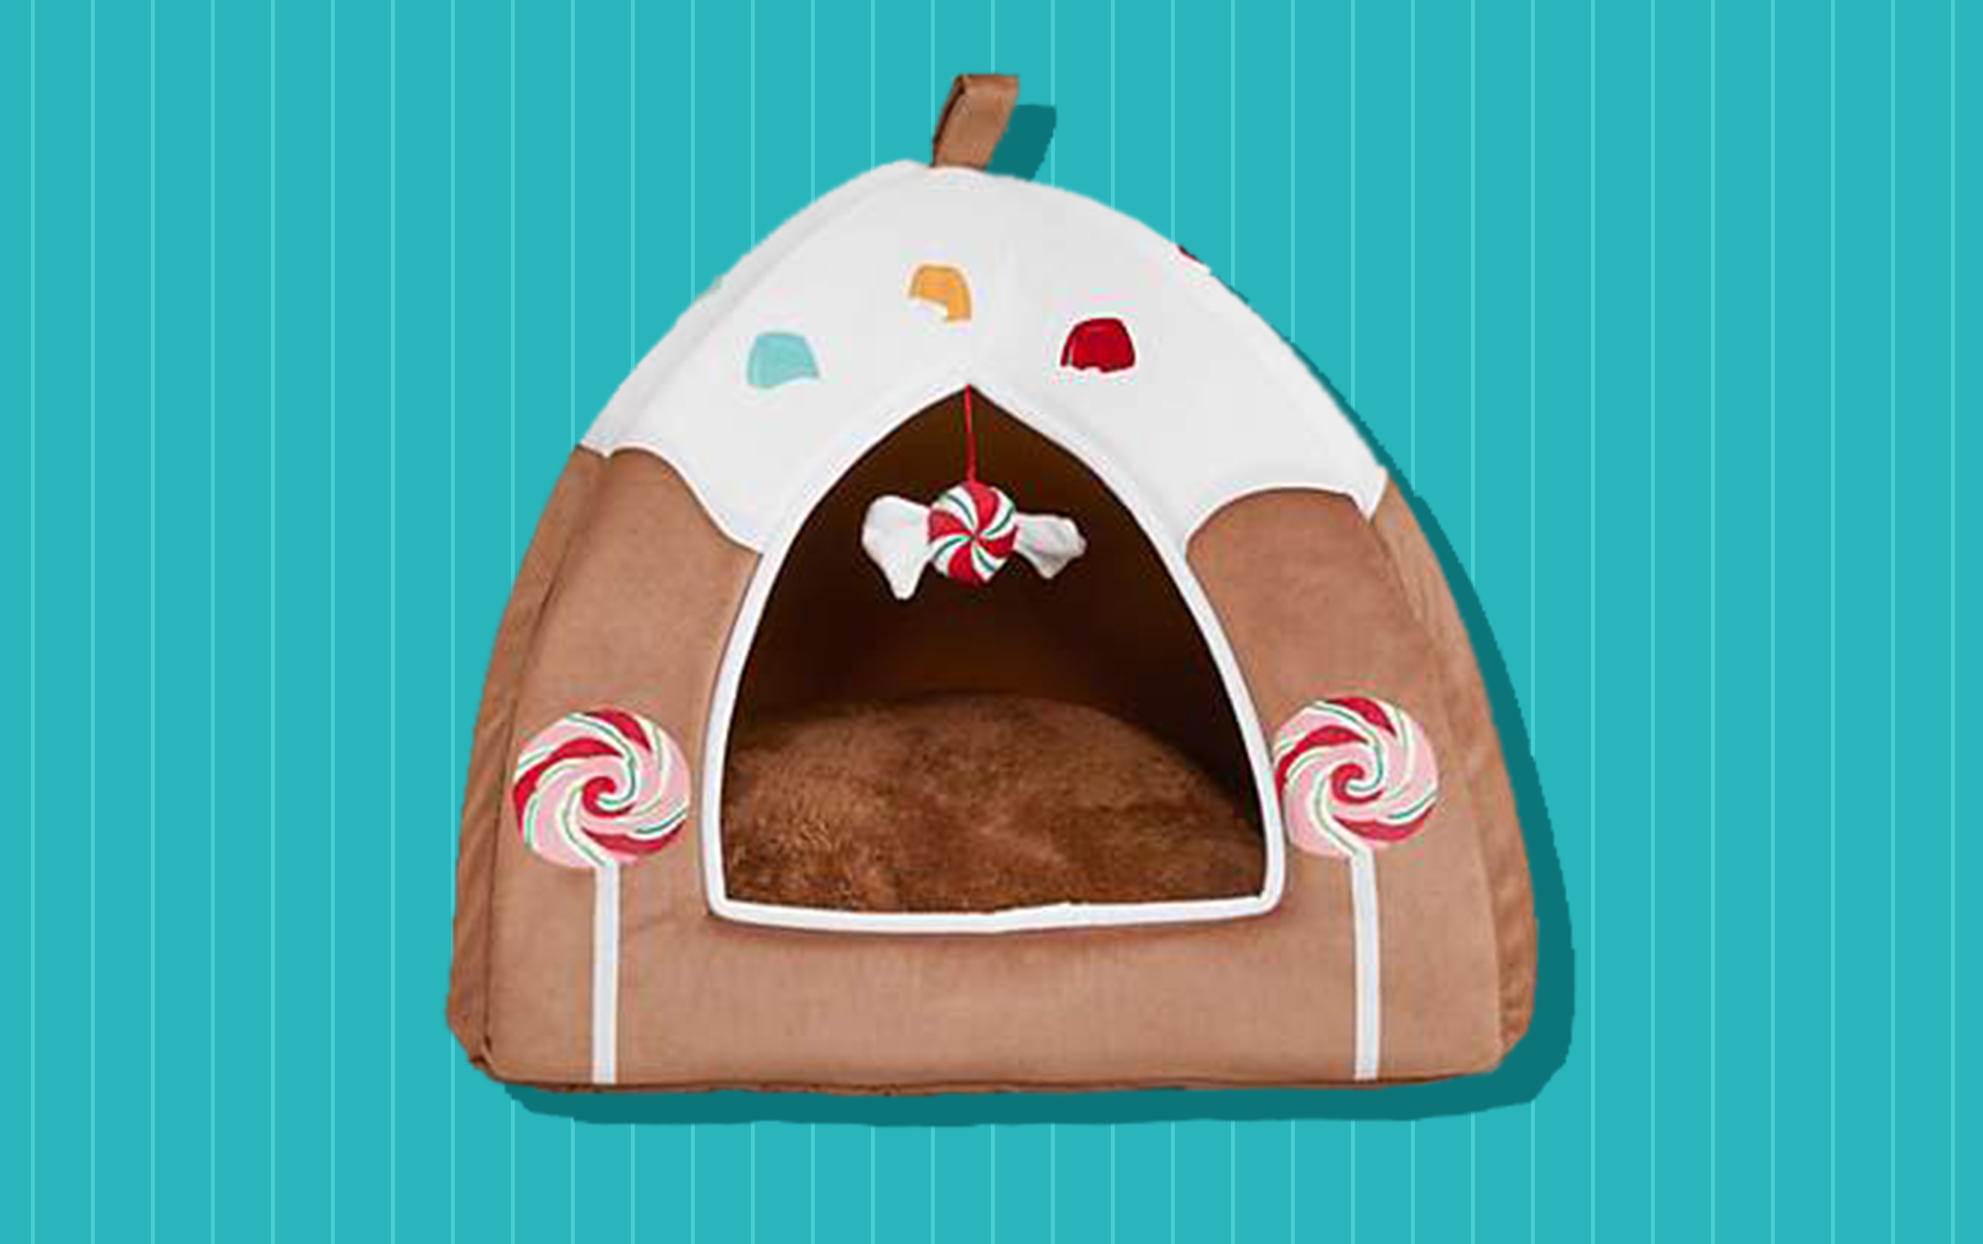 Silo of a gingerbread house cat bed on a teal background